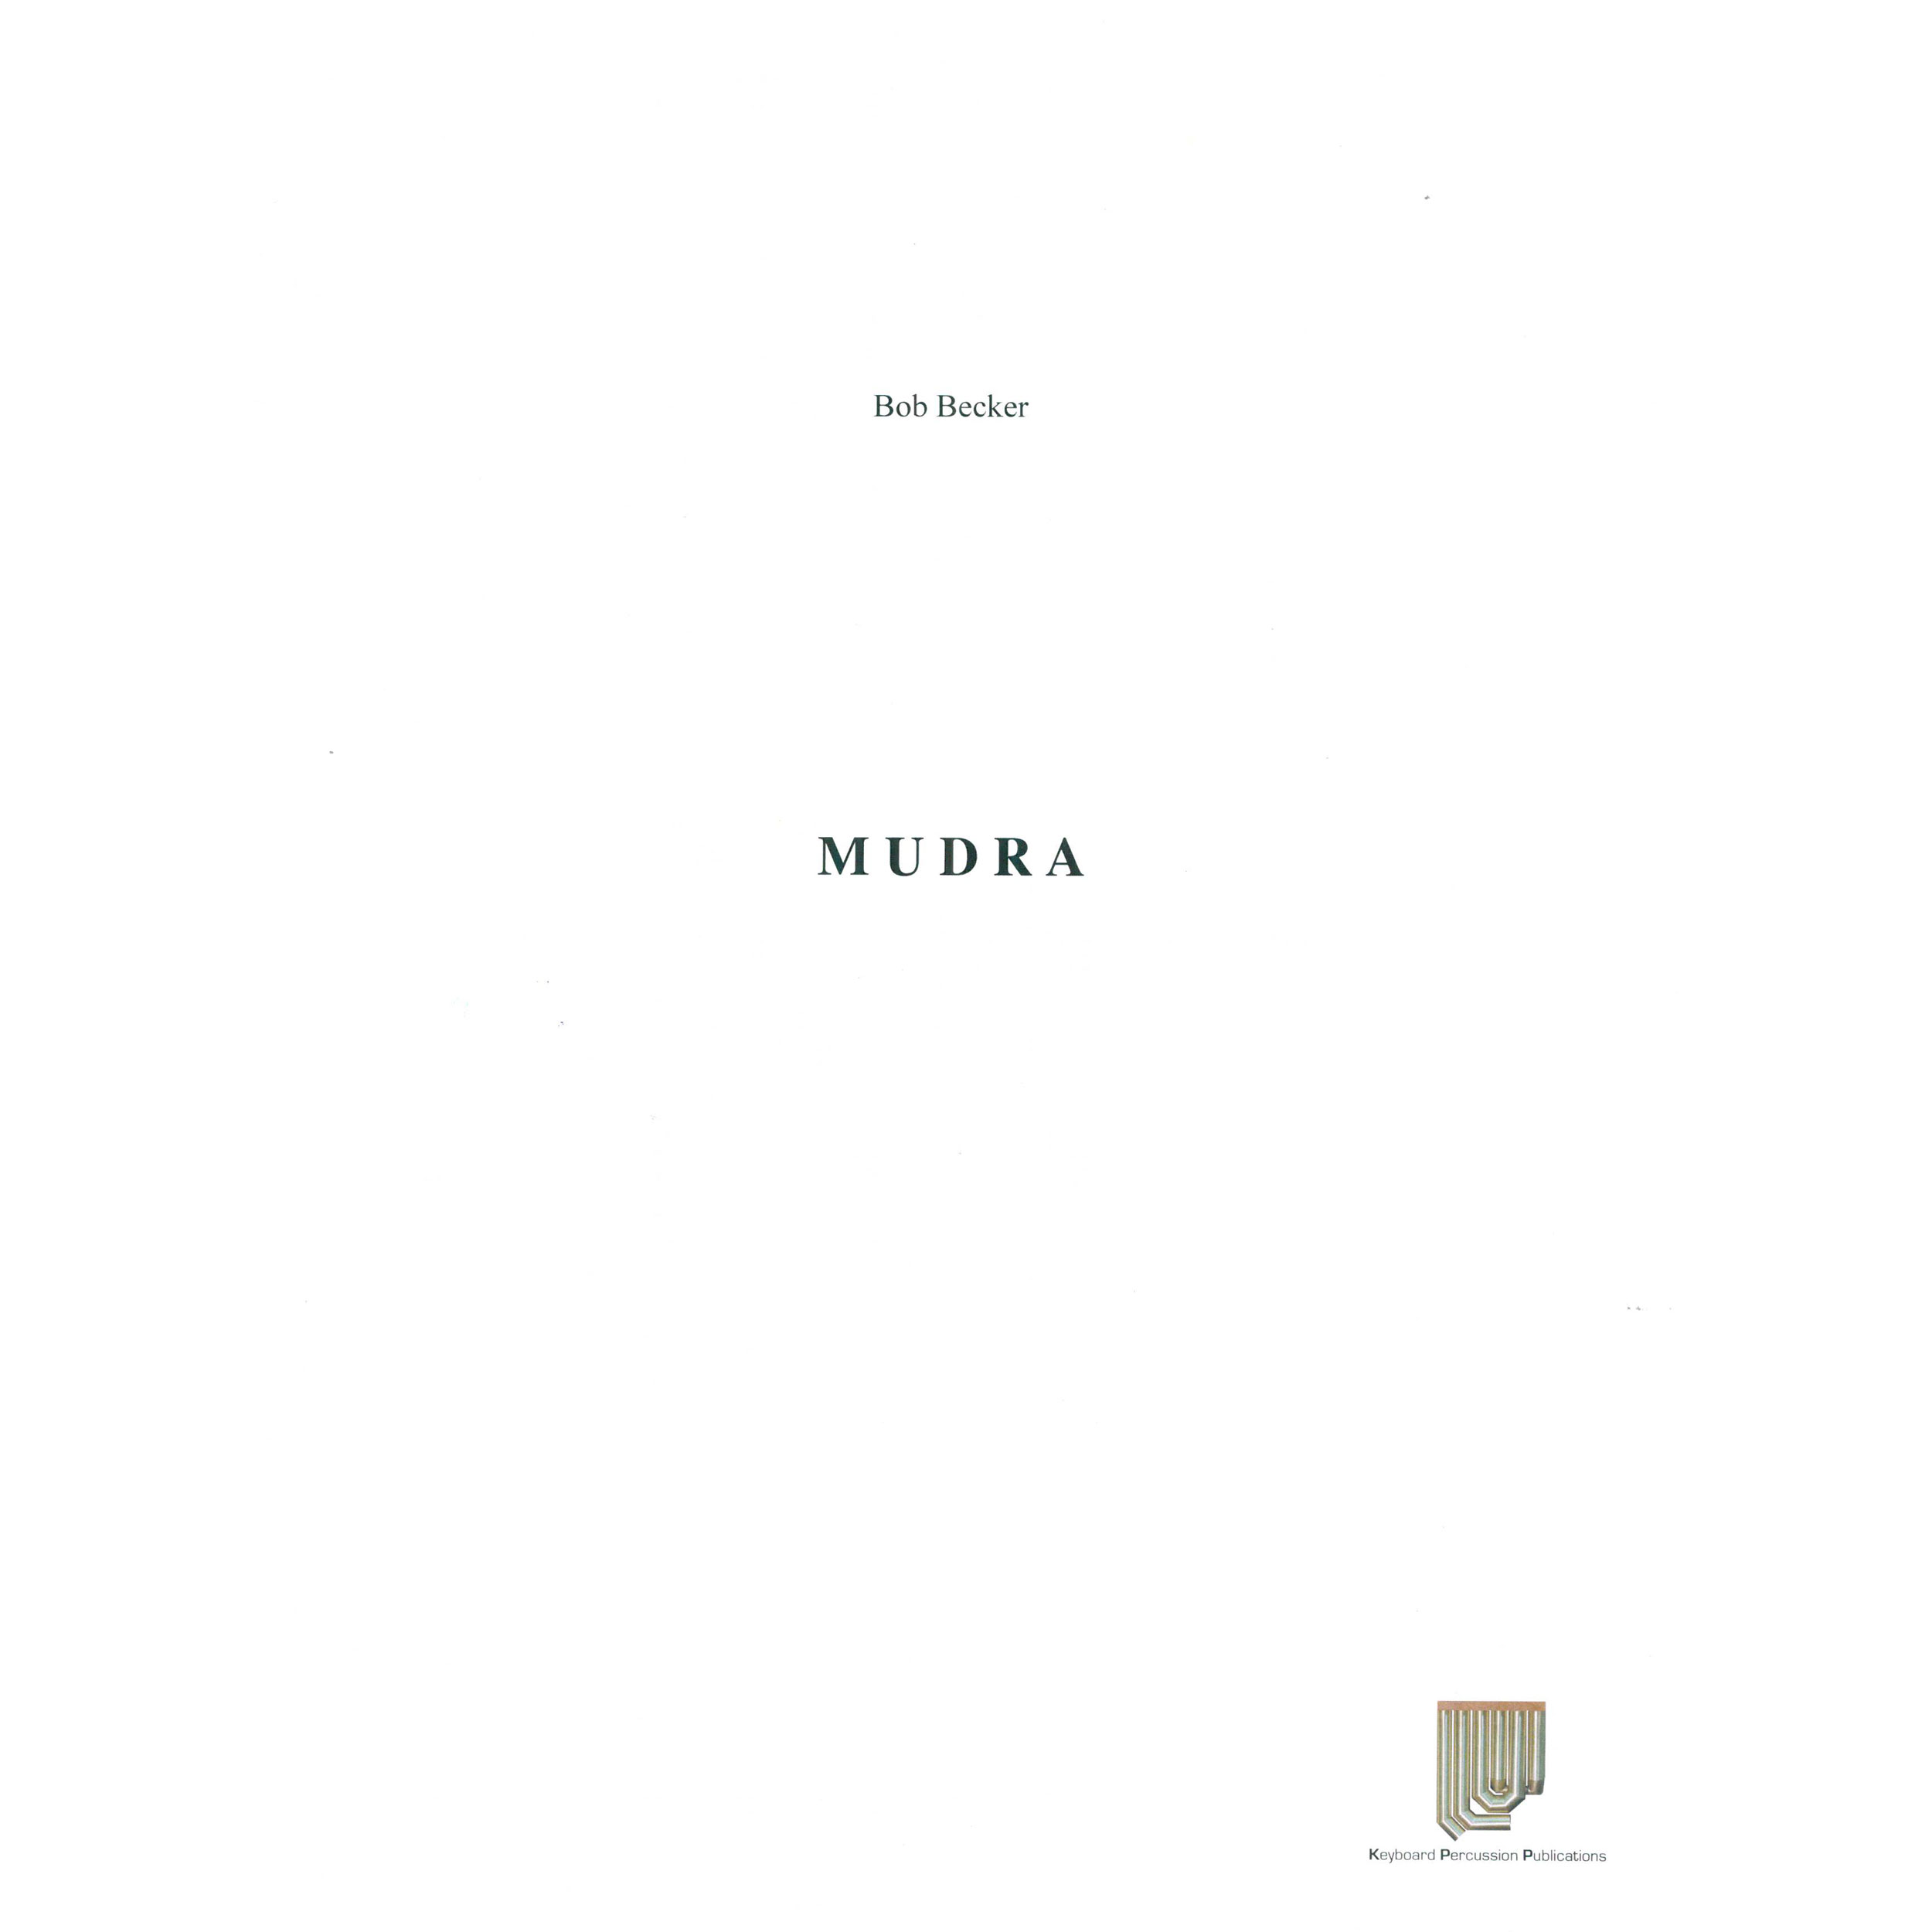 Mudra by Bob Becker